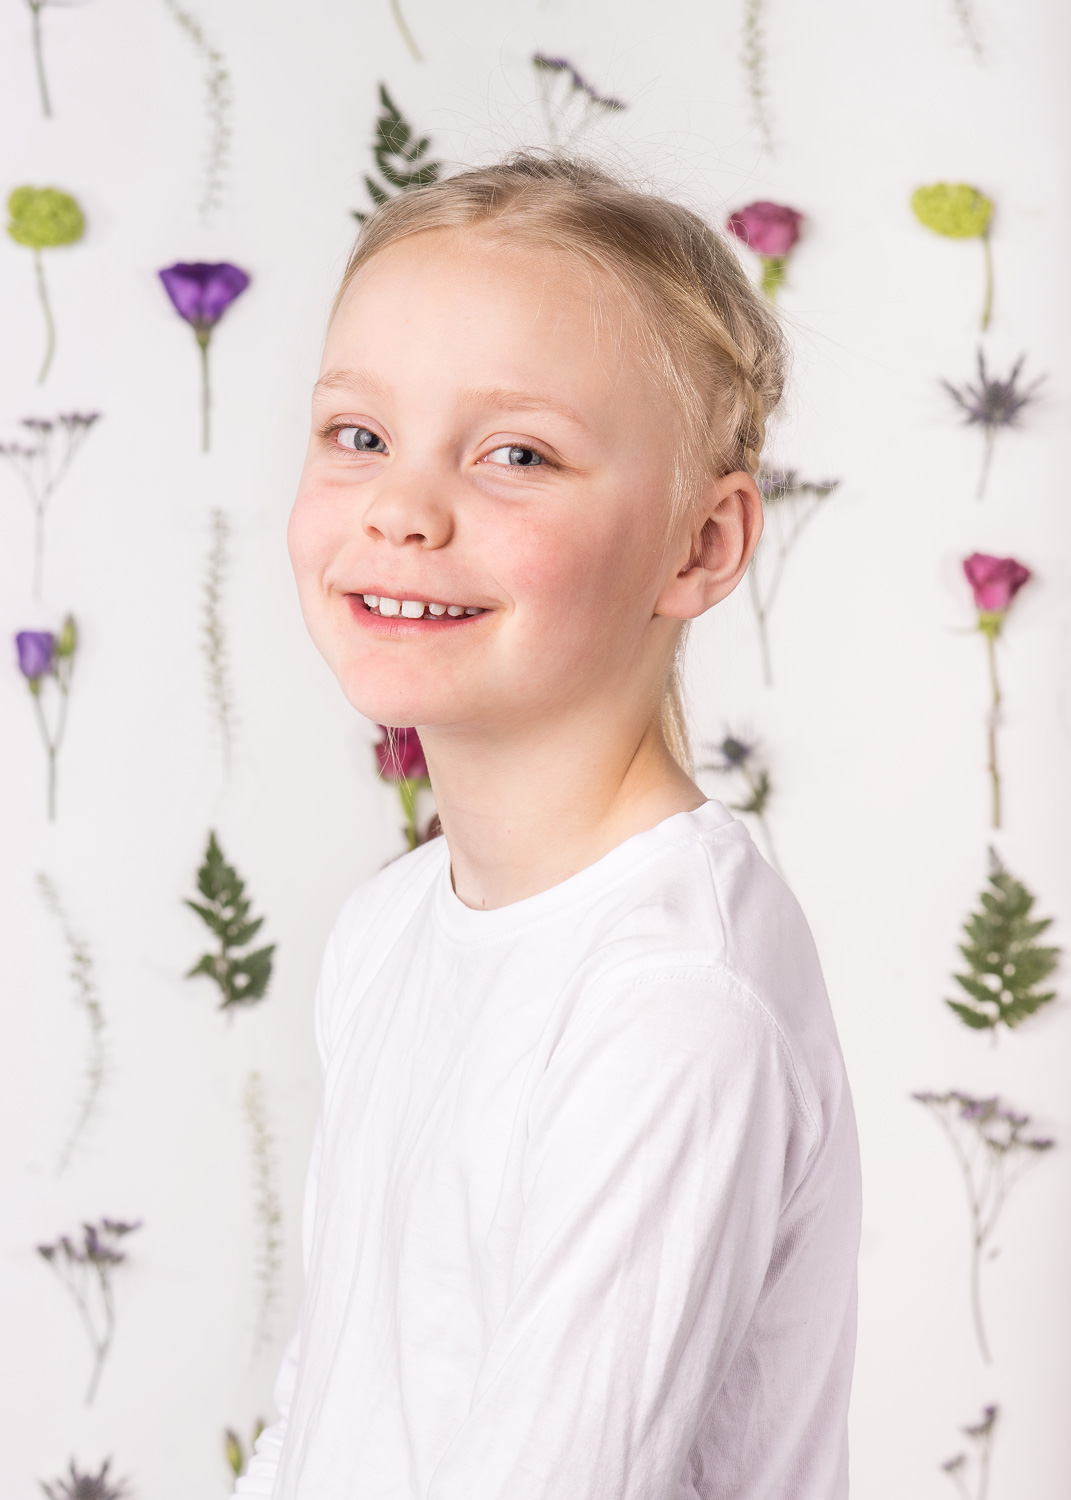 floral backdrop portrait of girl.